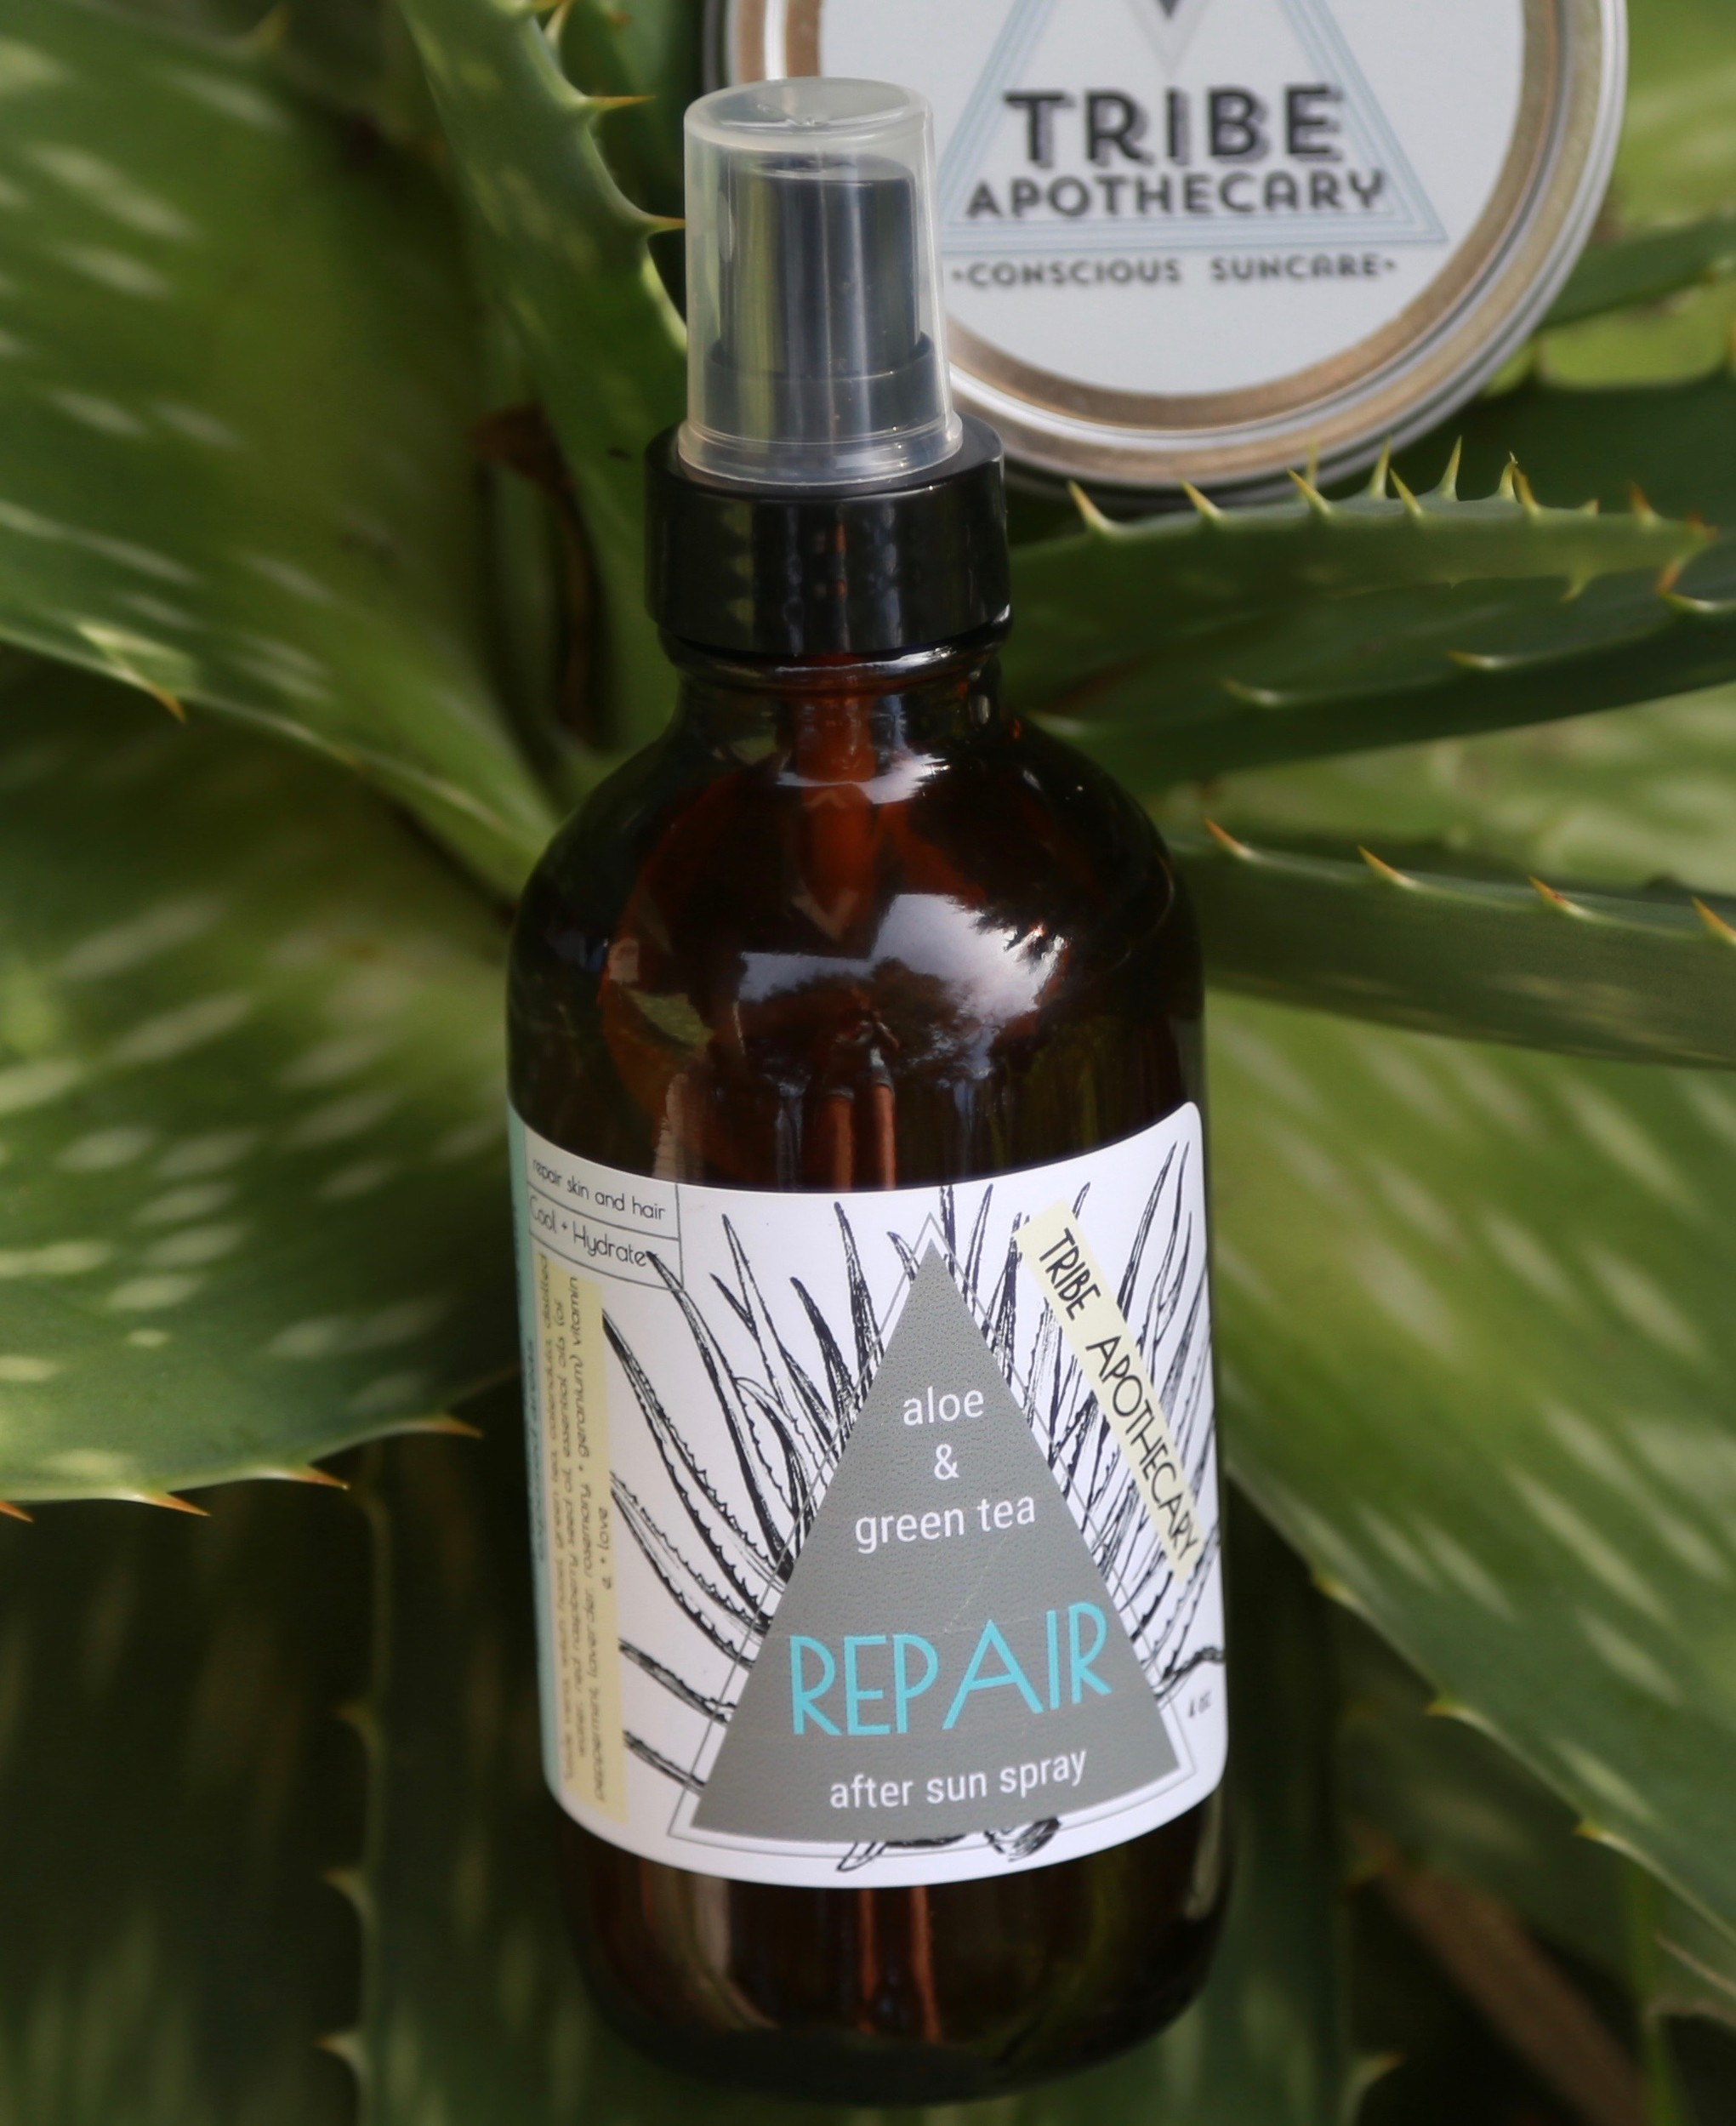 Aloe and green tea after-sun spray from Tribe Apothecary